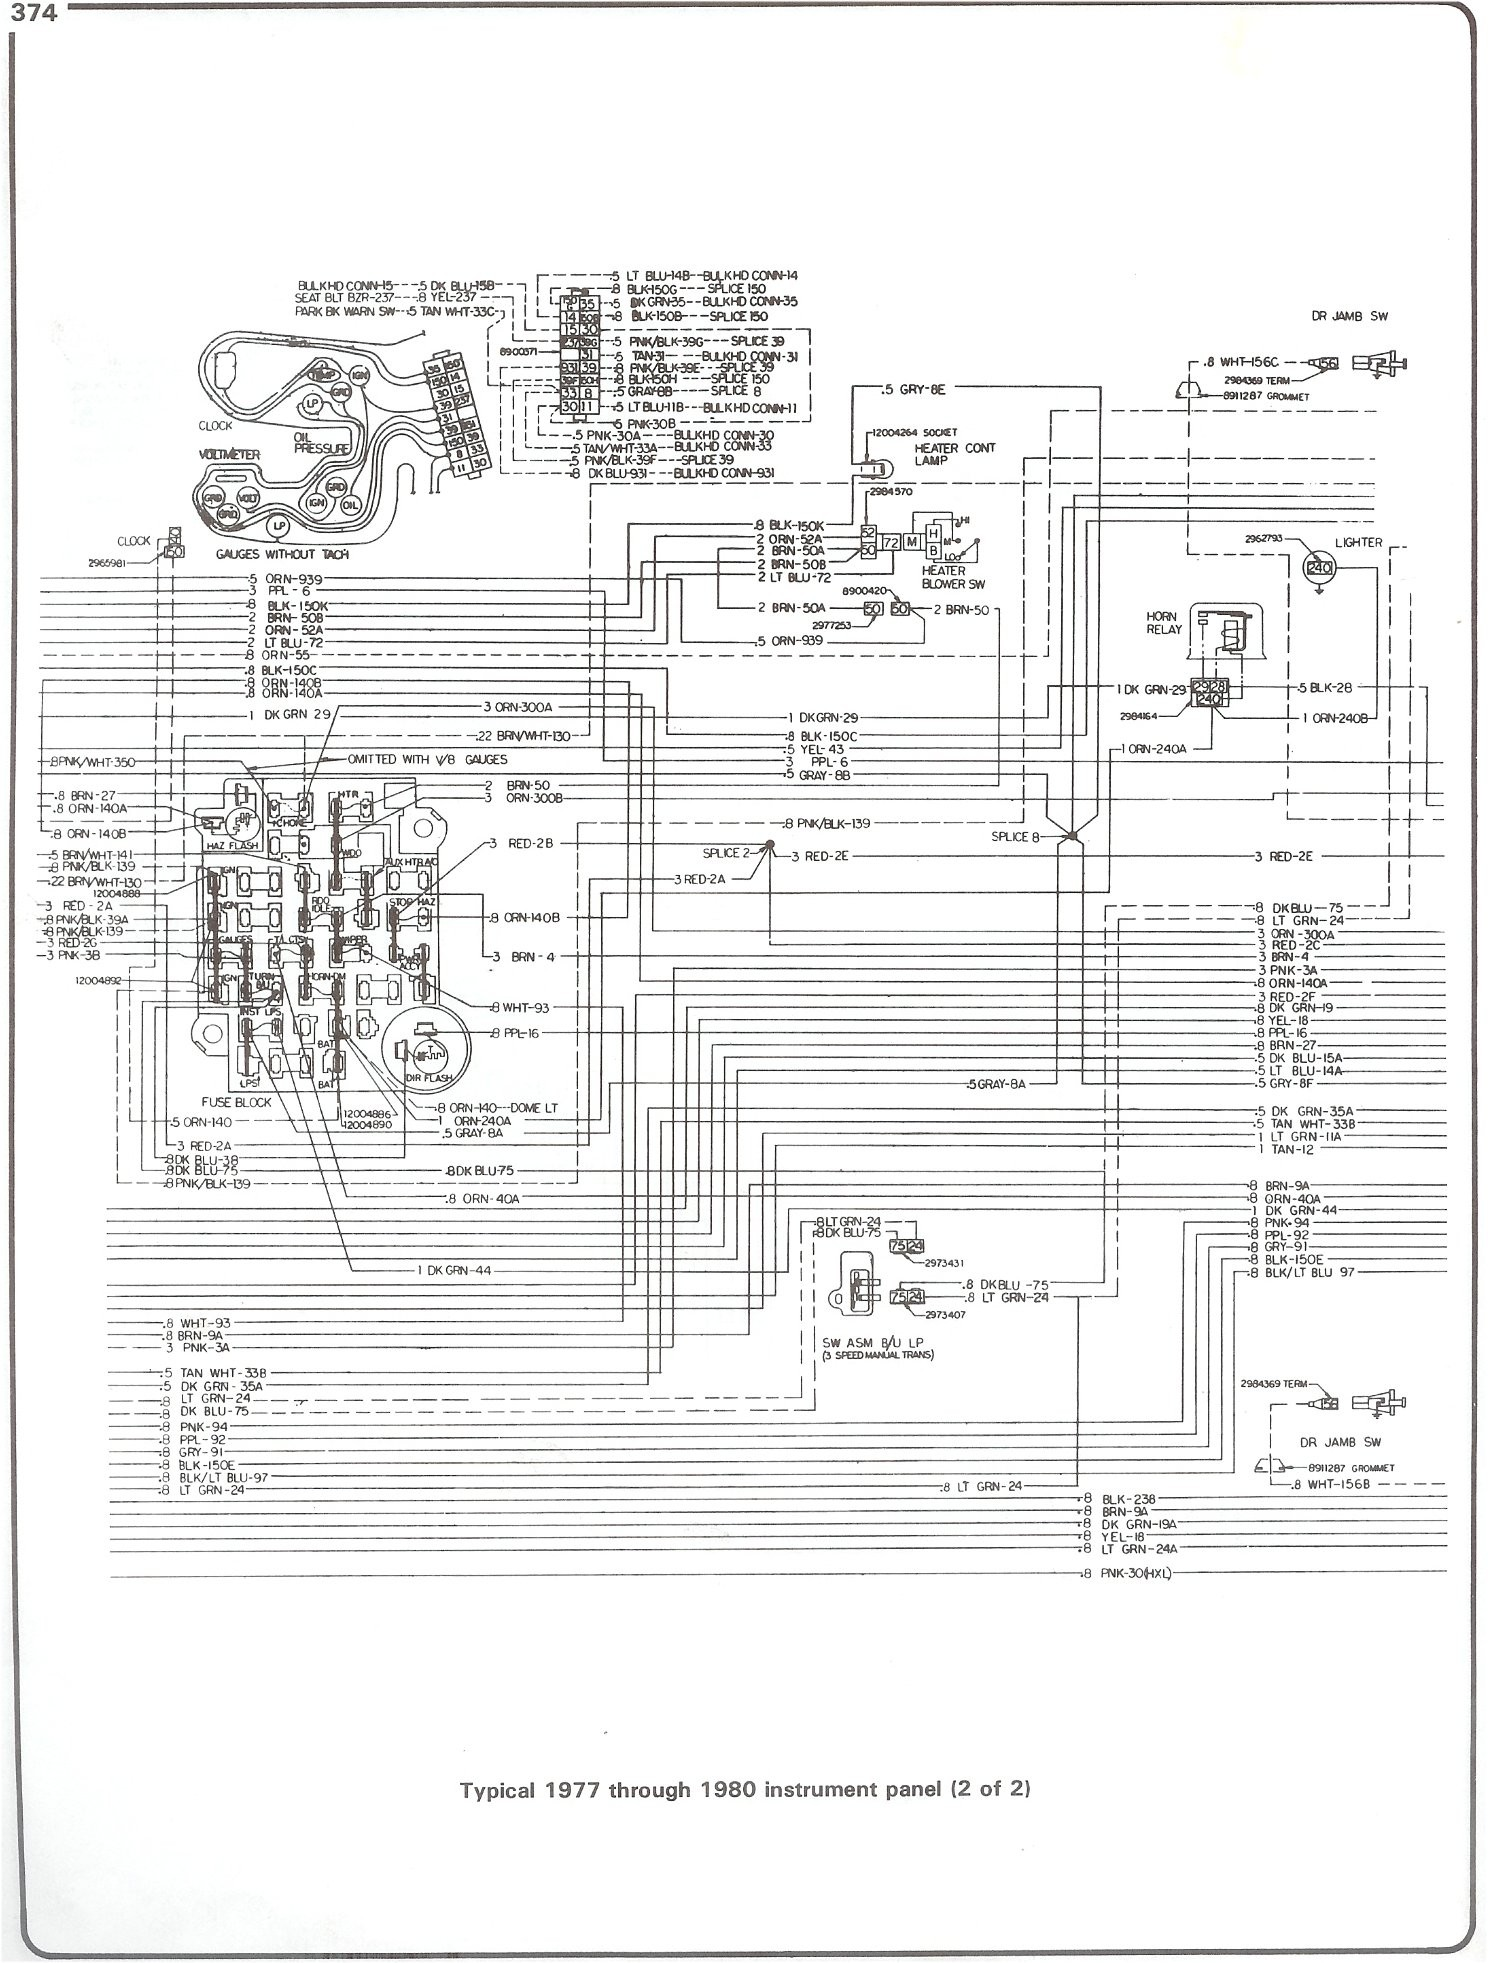 1993 Chevrolet C1500 Dash Wiring Diagram Data Diagrams Light For Wire Center U2022 Rh Plasmapen Co Cluster Chevy Cheyenne